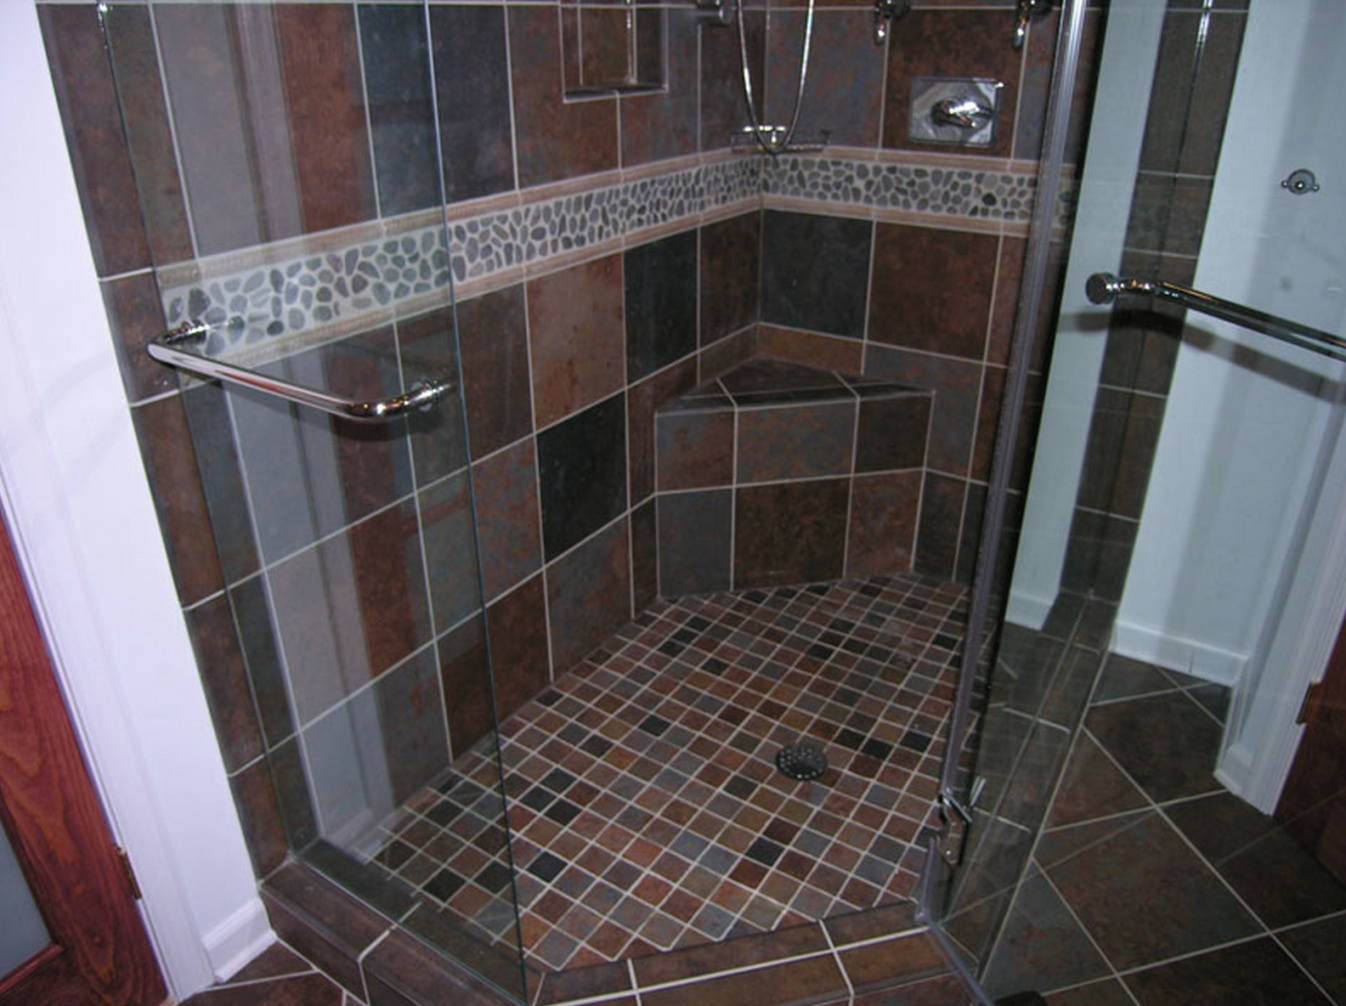 The Best Height to Install Shower Accent Tiles - Conestoga Tile